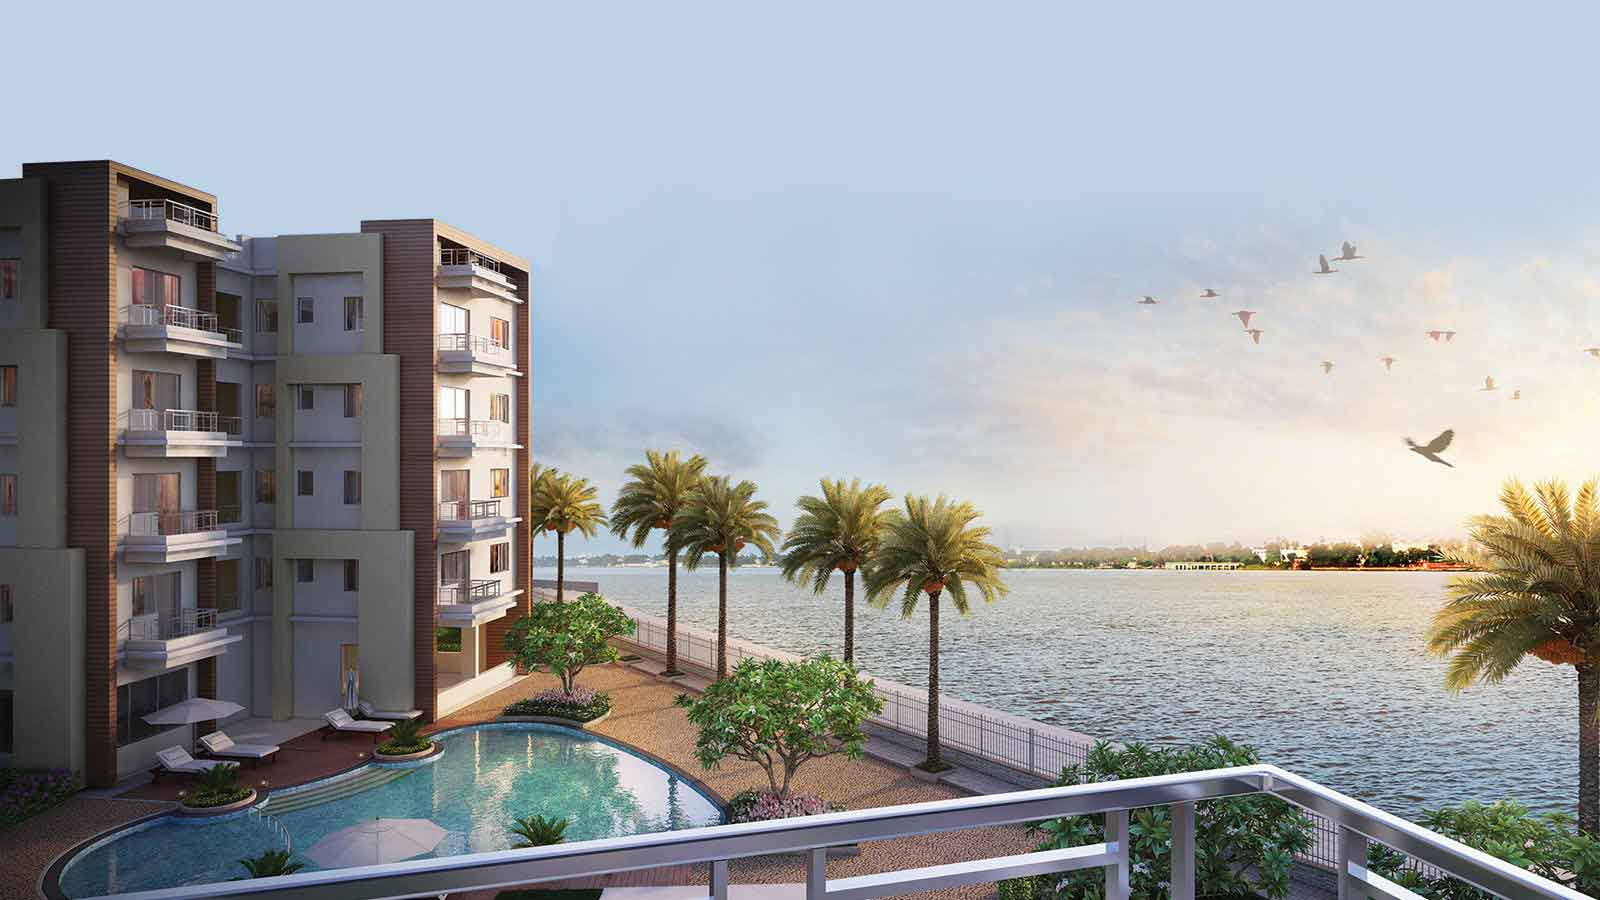 Rameswasra Riverview Apartments at Barrackpore